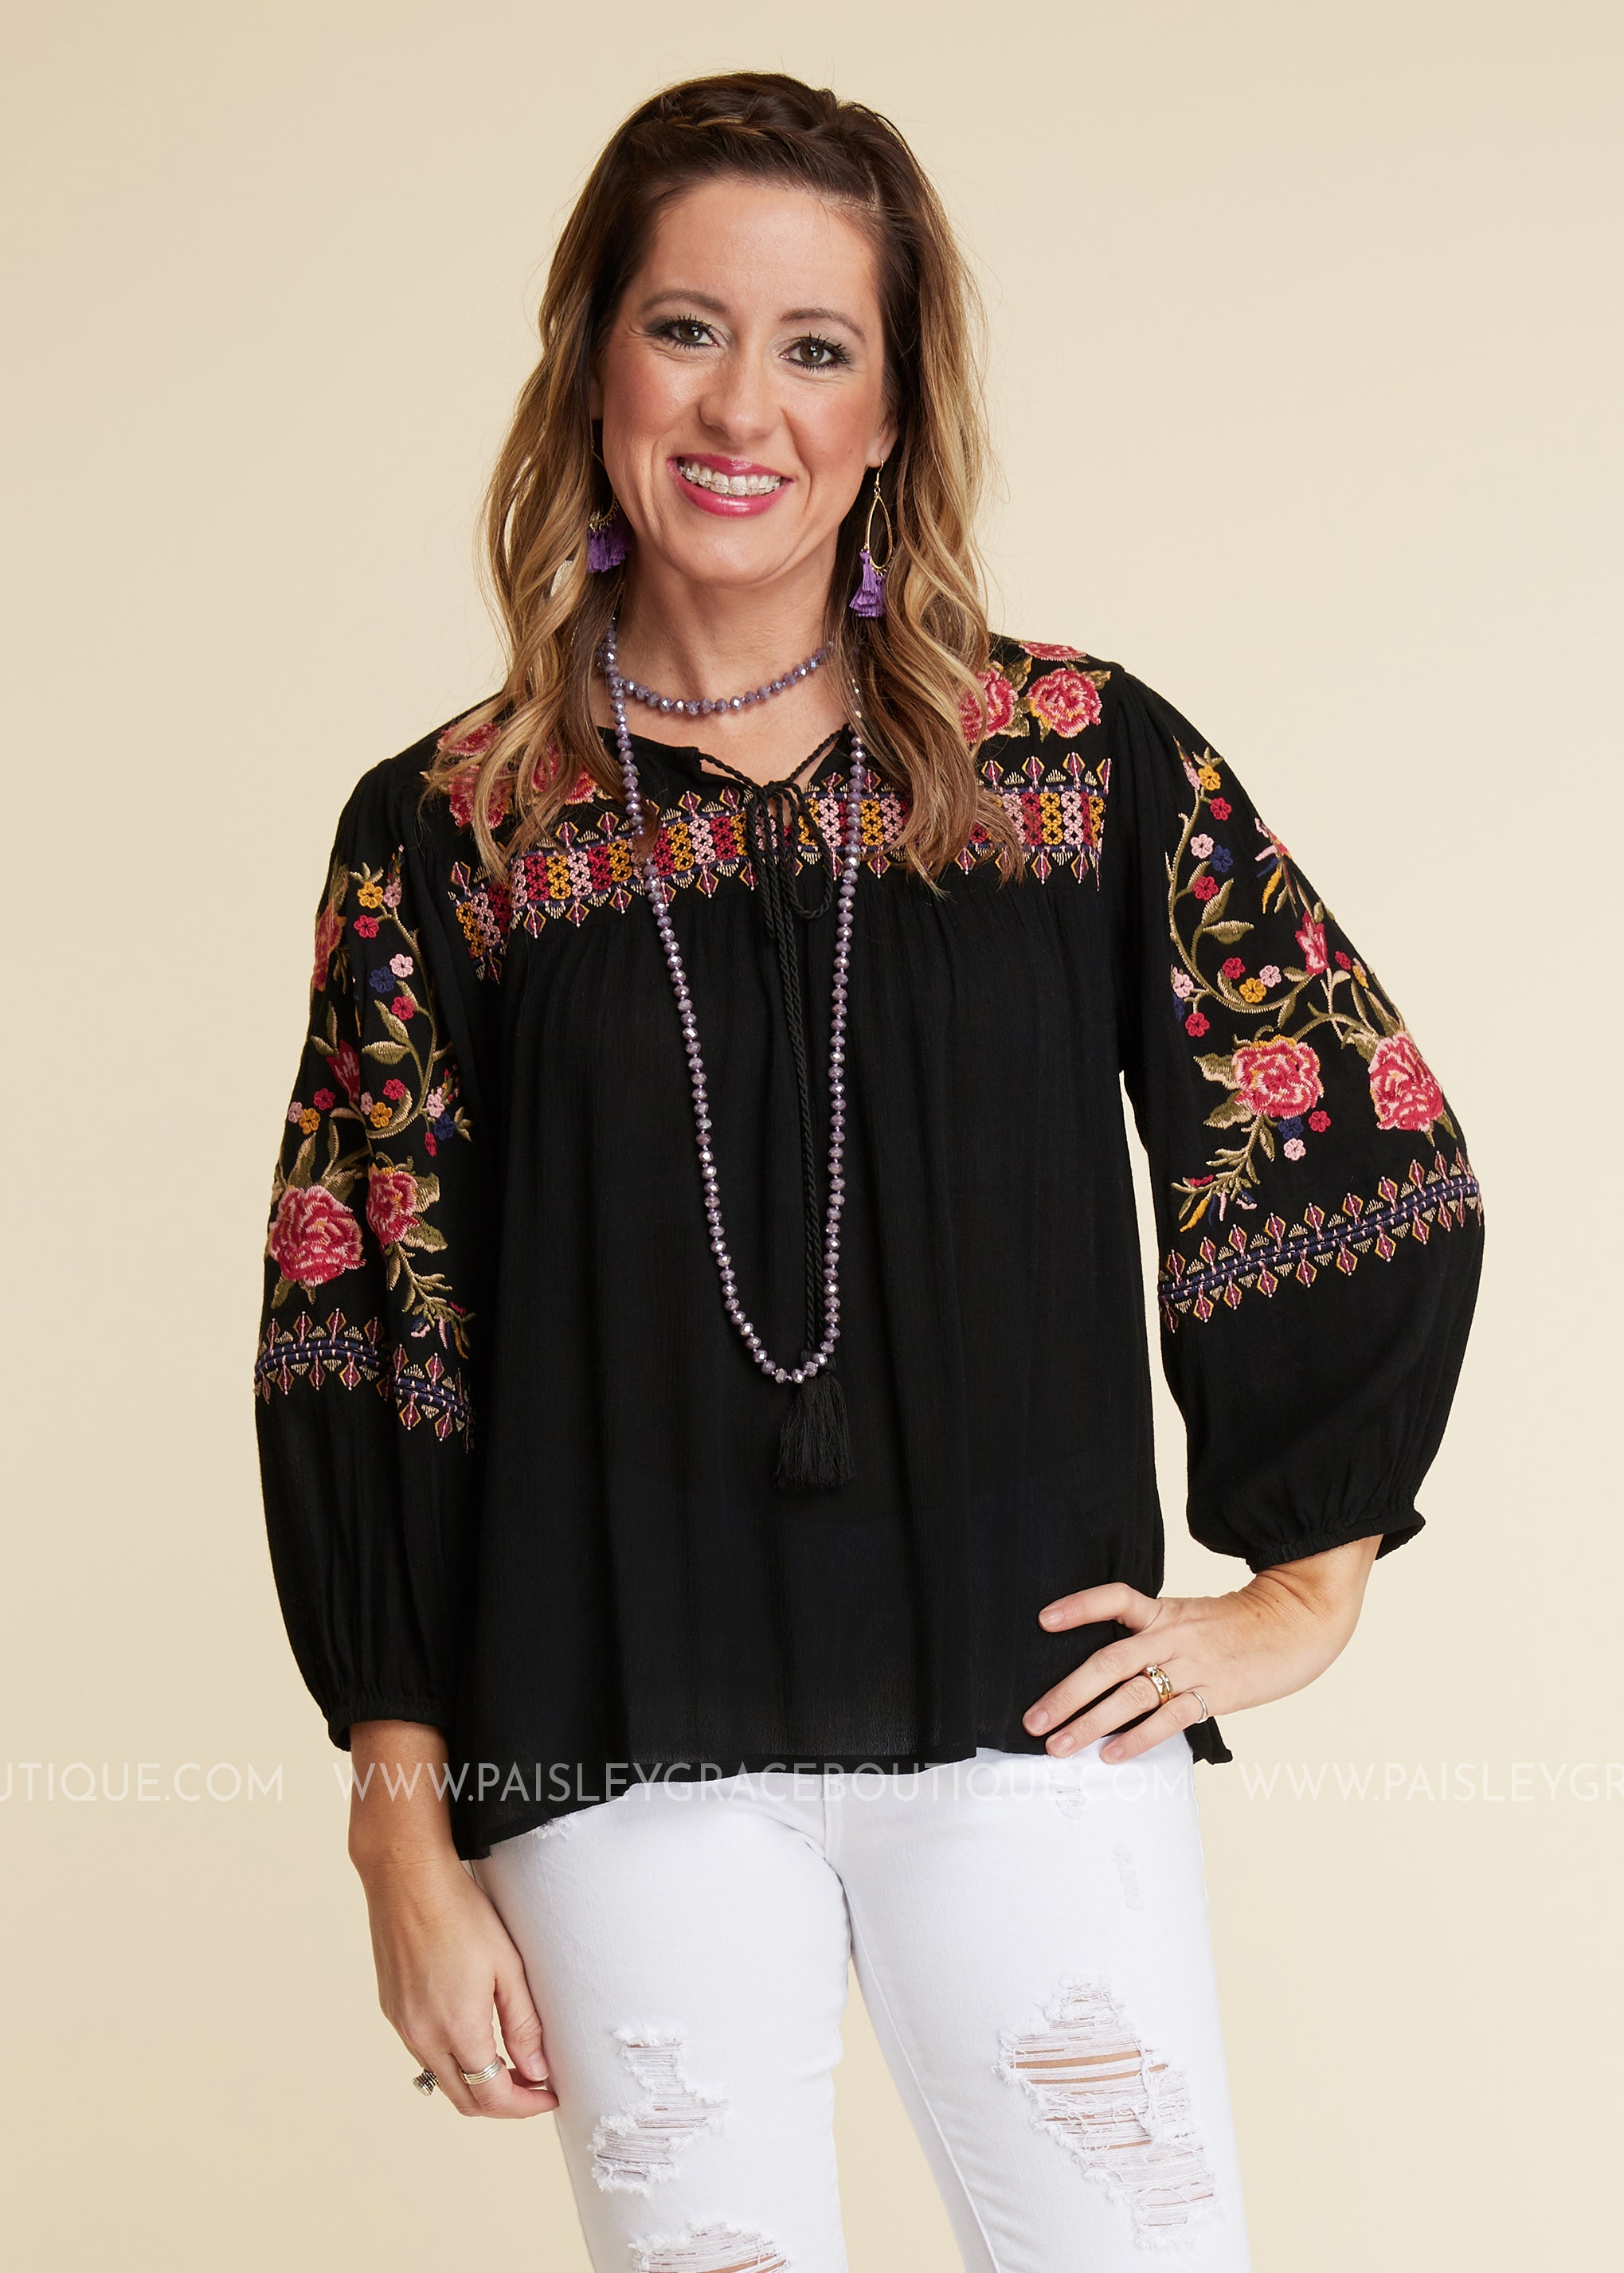 Ambrosia Embroidered Top - FINAL SALE